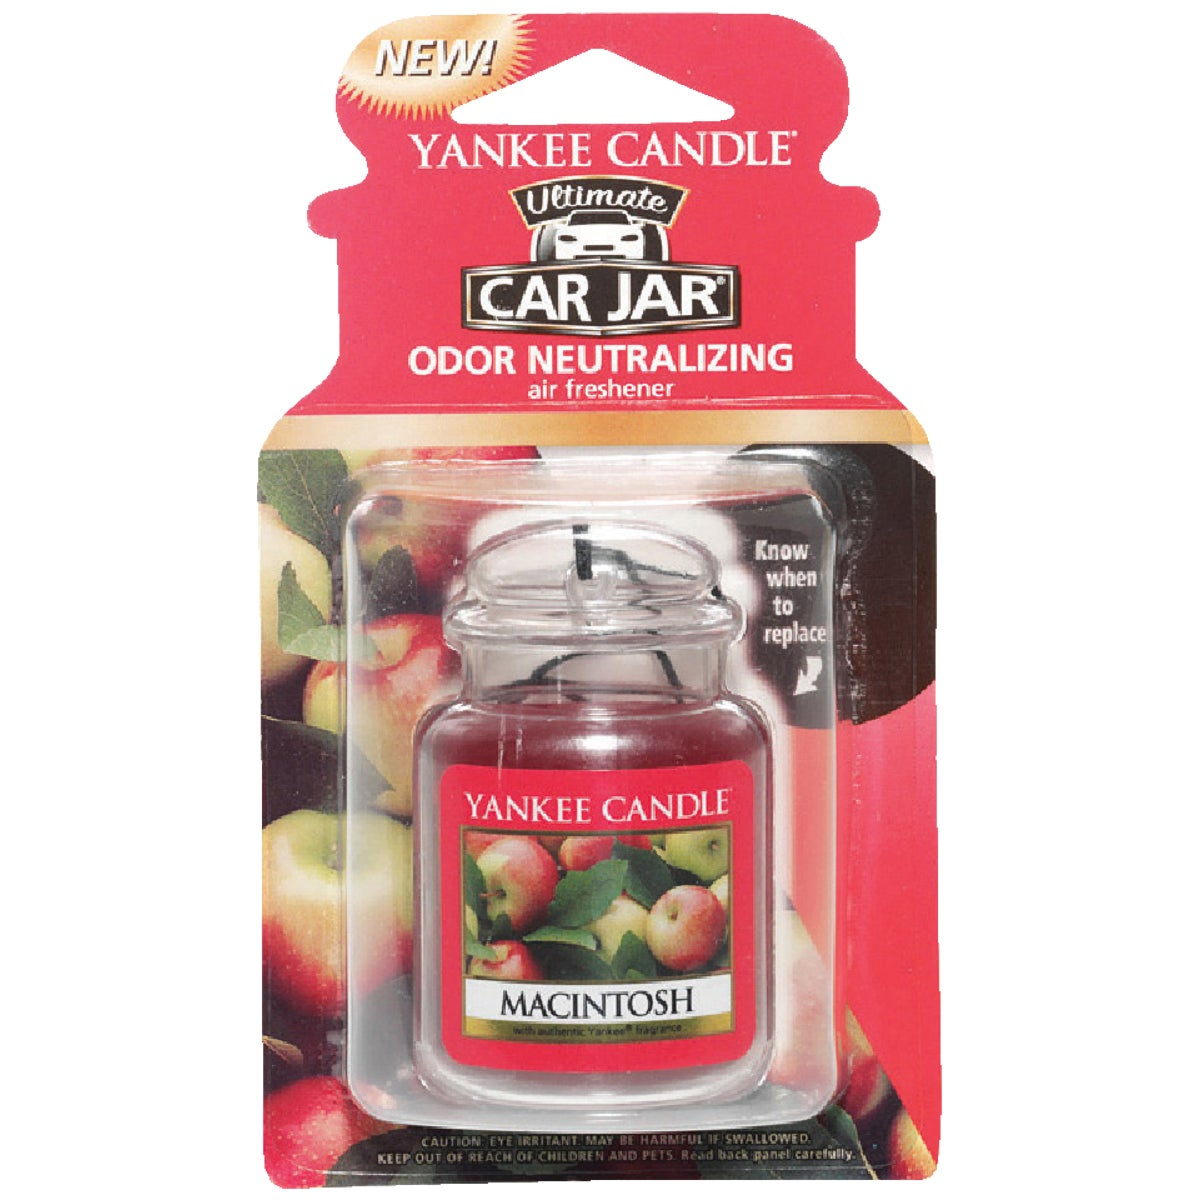 MACINTOSH CAR FRESHENER - 1220885 by Yankee Candle Co